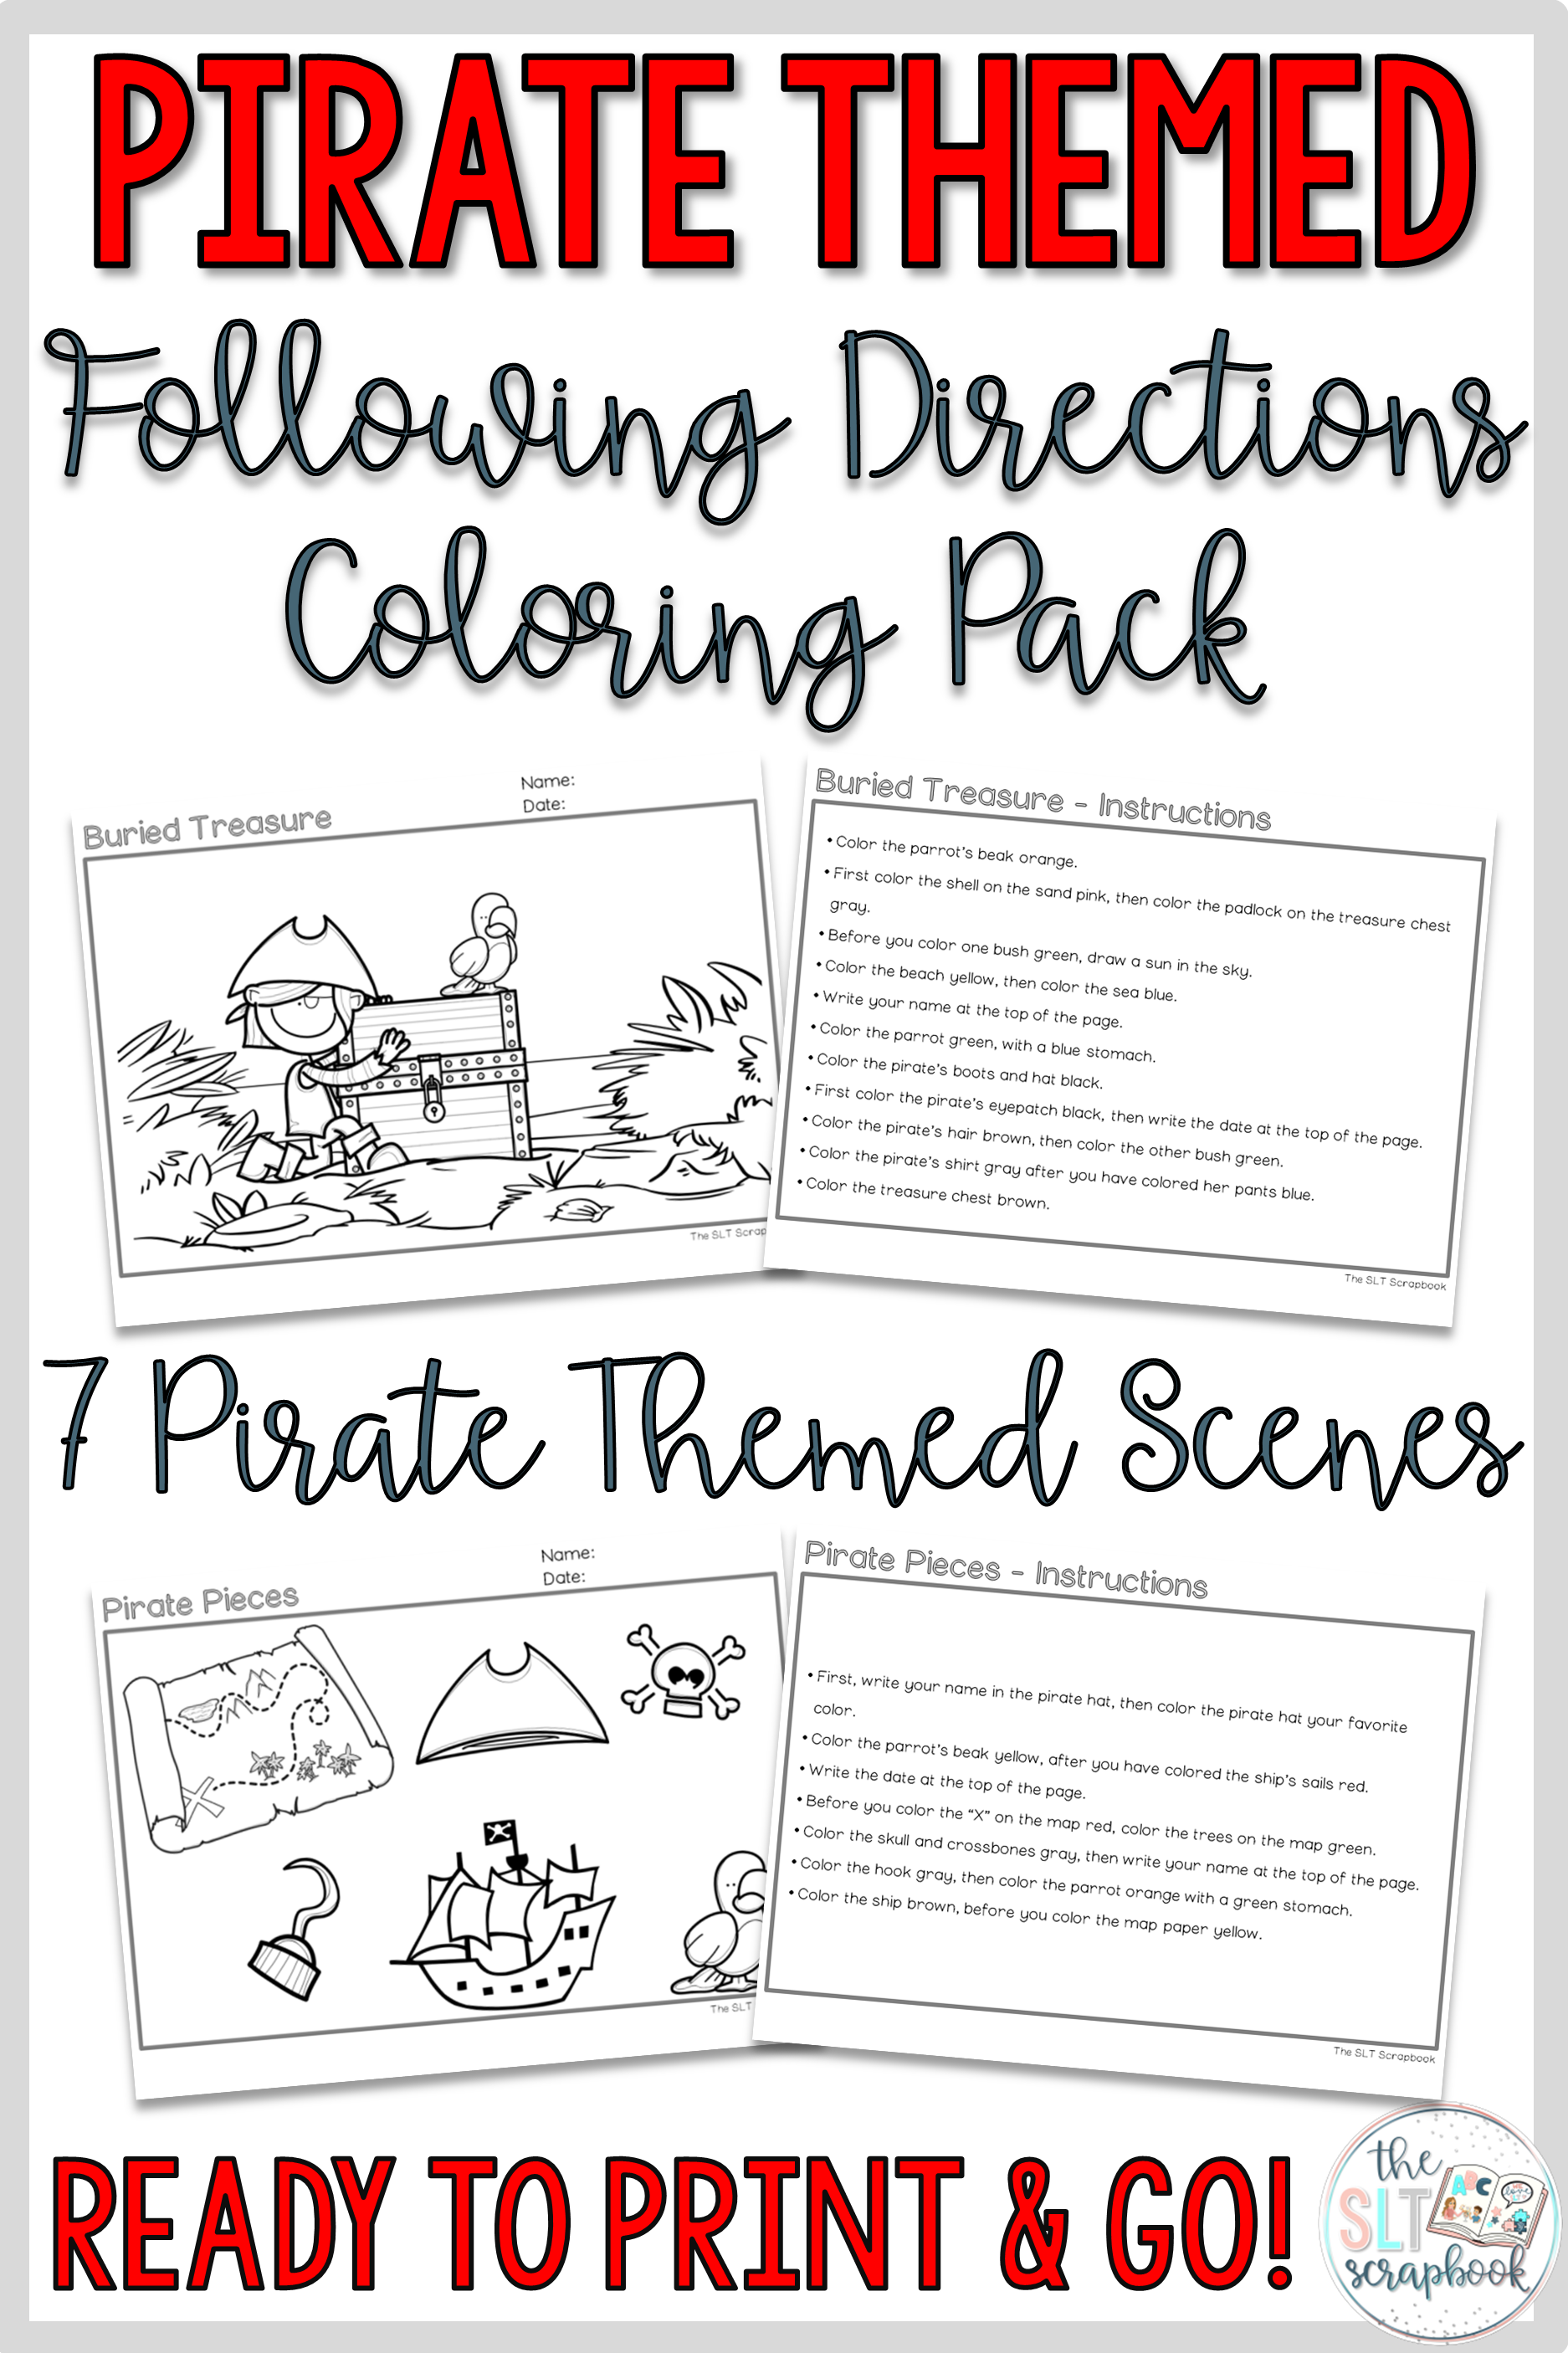 Pirate Themed Following Directions Coloring Pack No Prep Slp